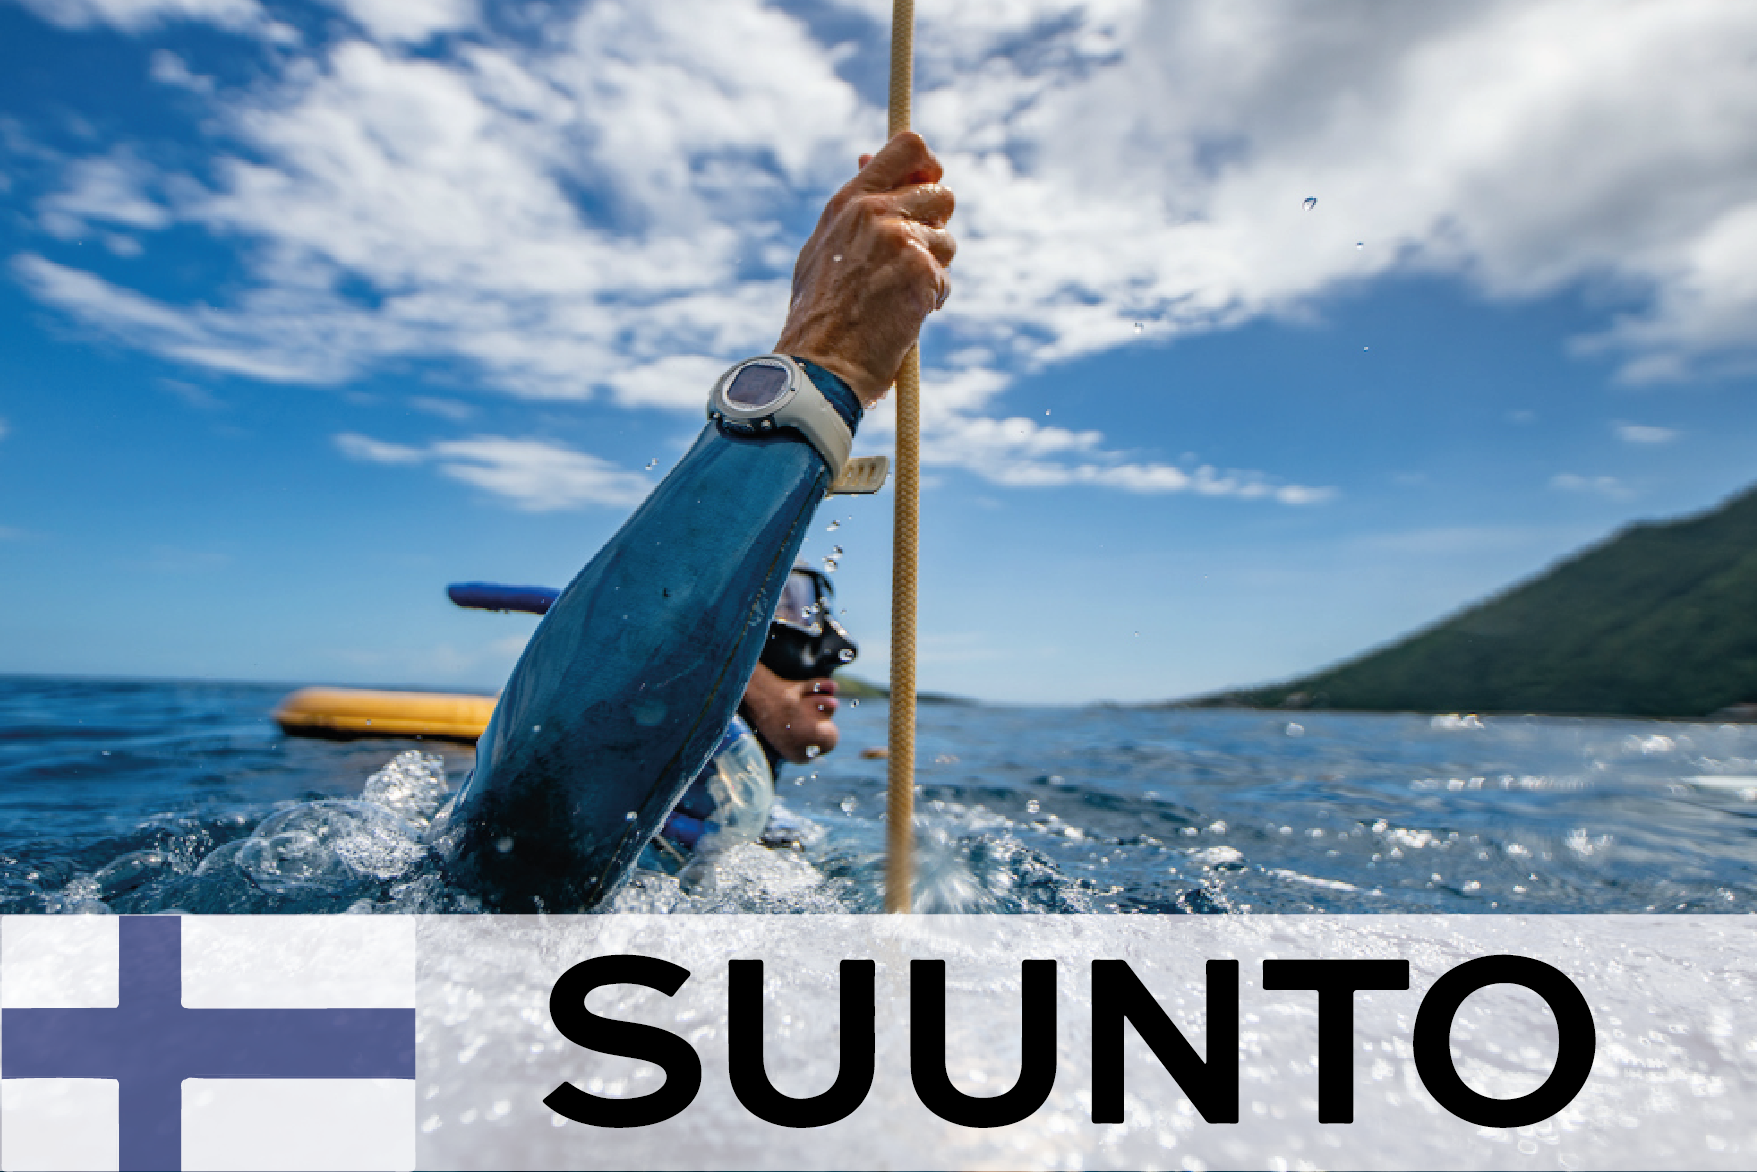 #32 Suunto – Durable and repairable outdoor electronics - CIRCit Nord